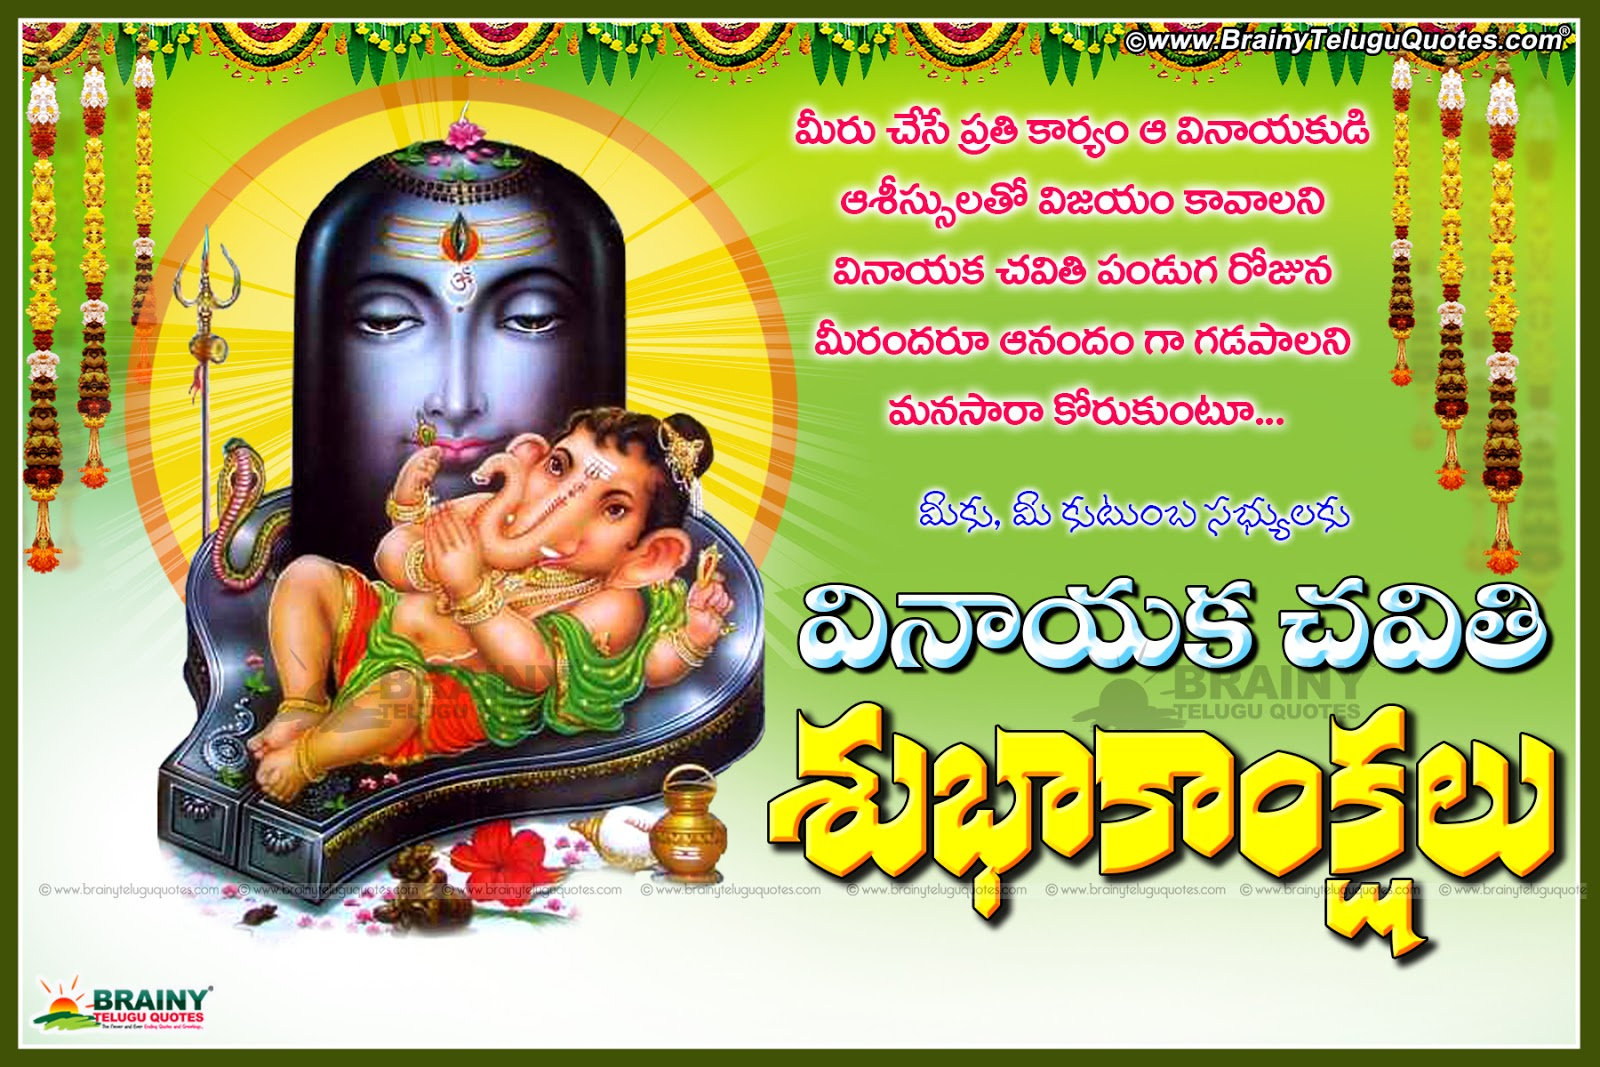 Best greetings and pictures about happy vinayaka chavithi festival best greetings and pictures about happy vinayaka chavithi festival wishes images m4hsunfo